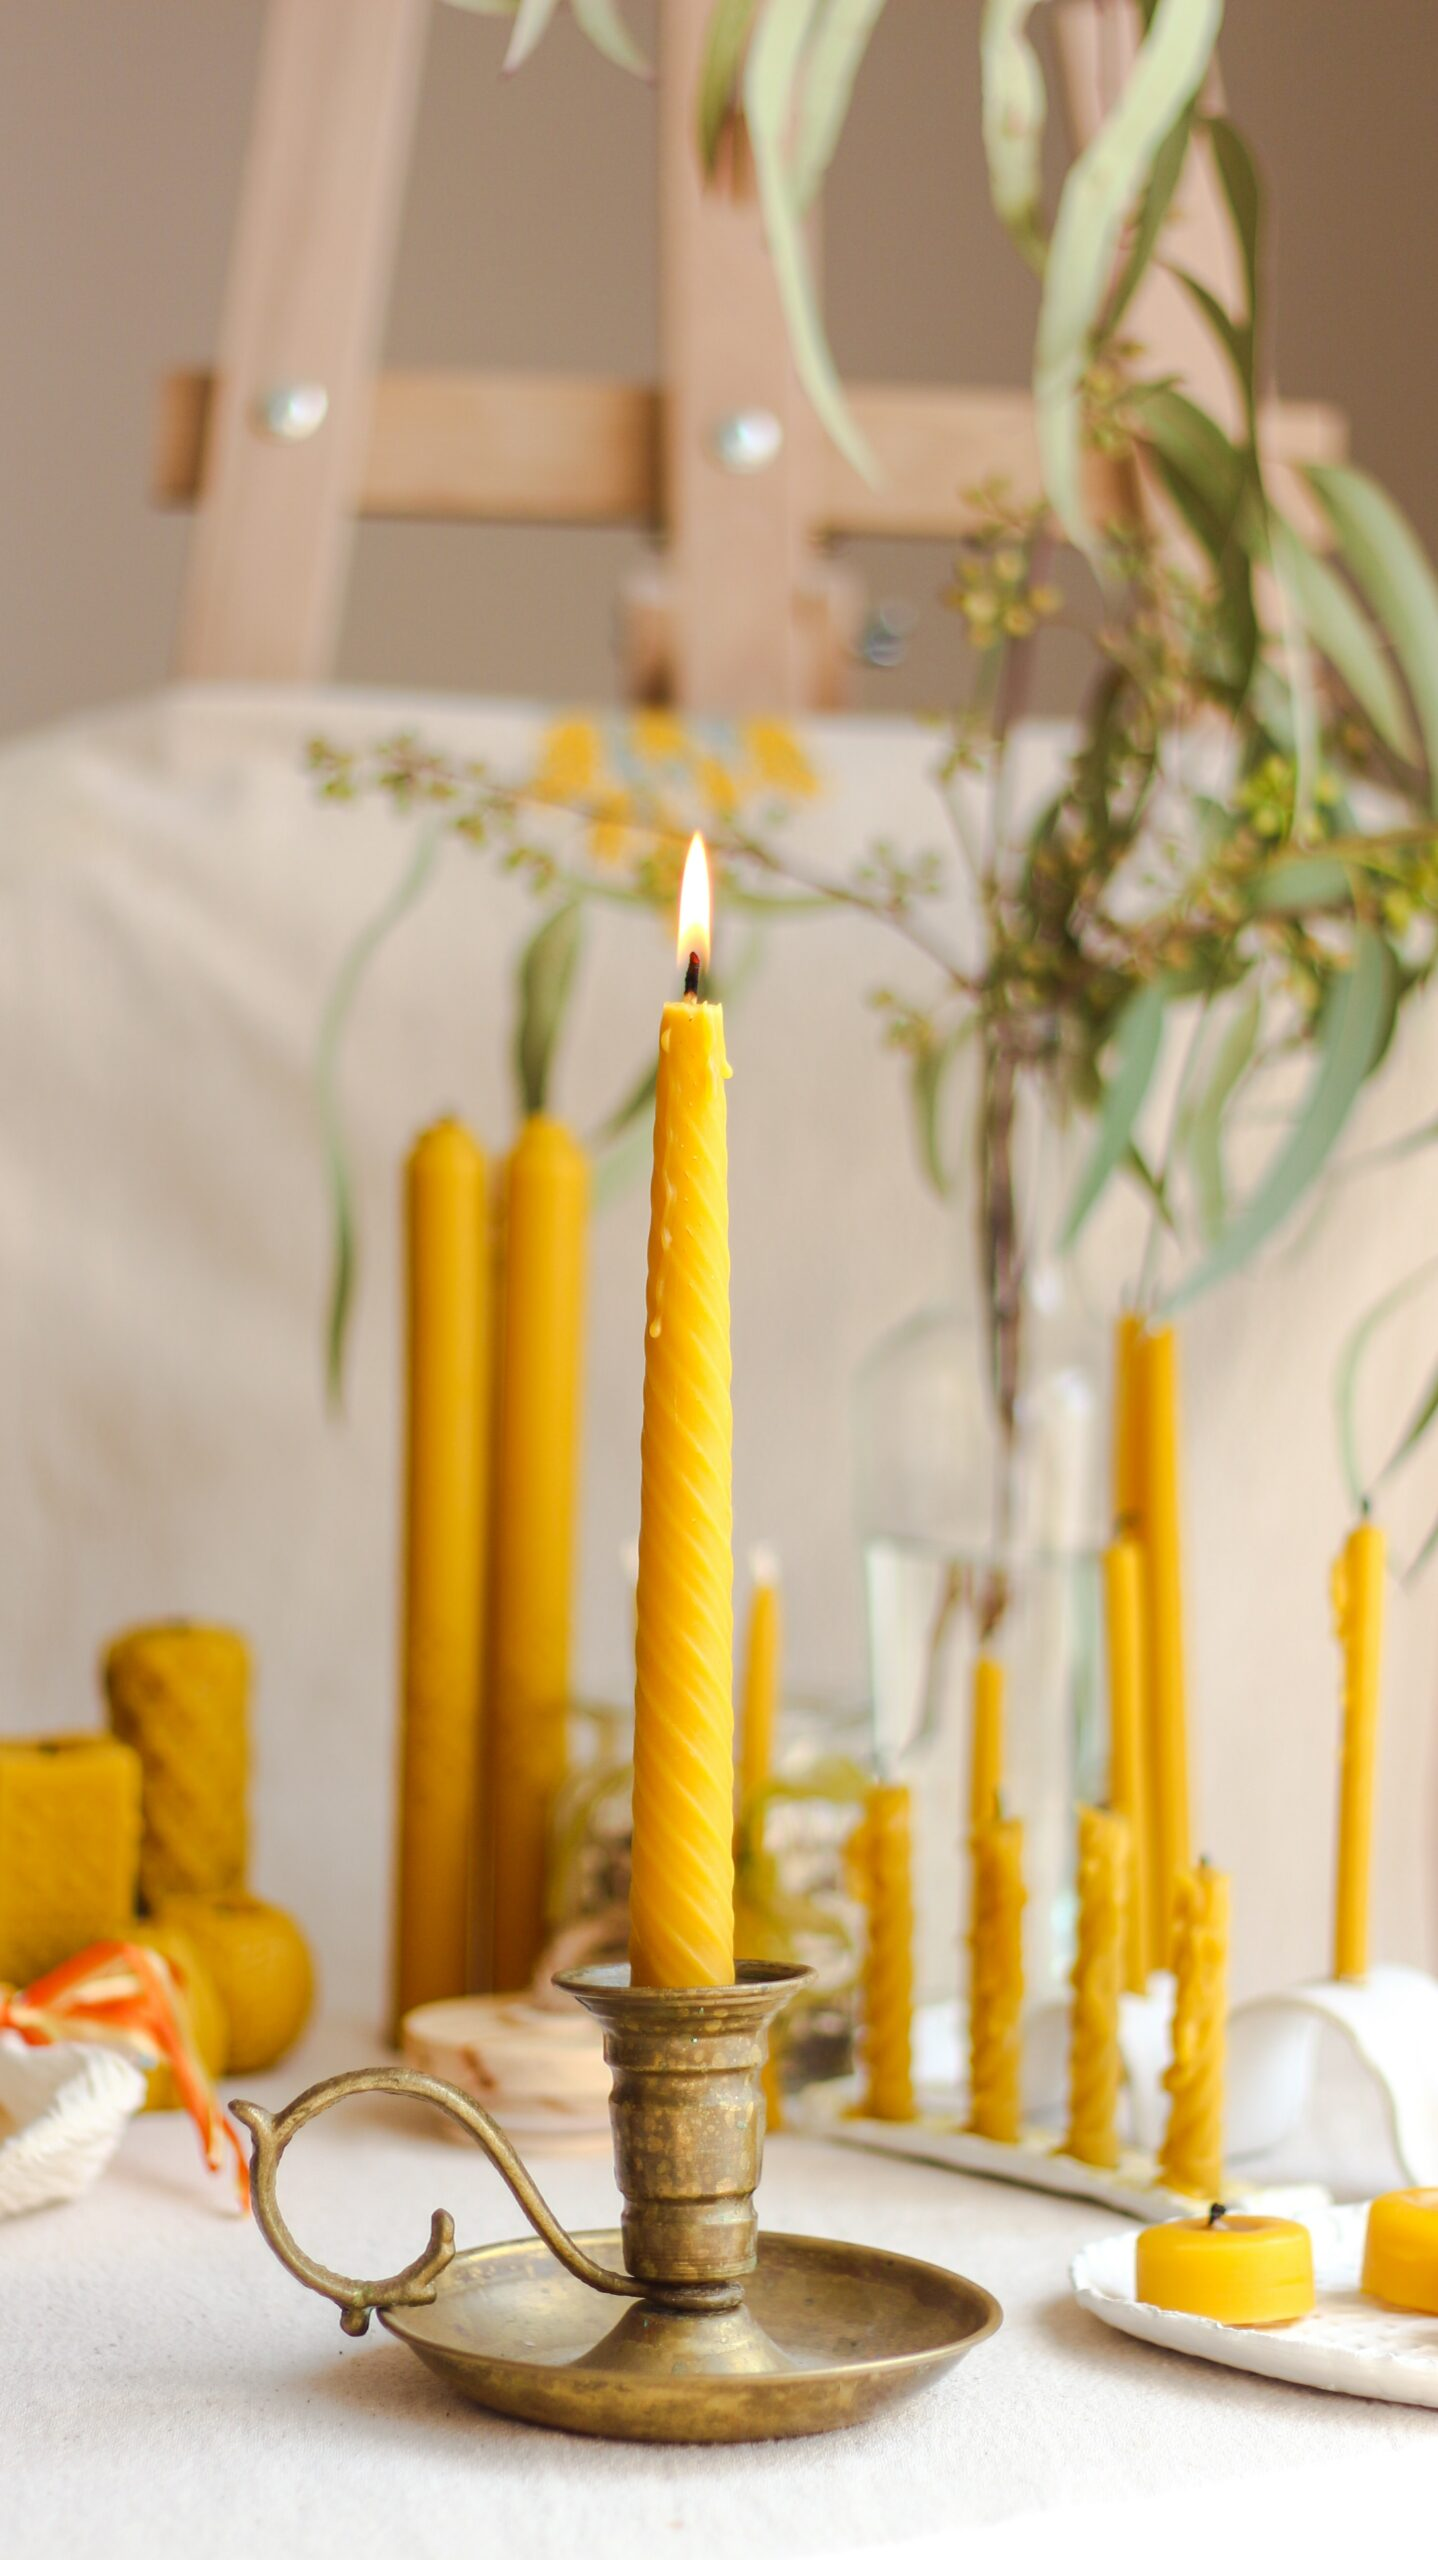 Candle Holders with yellow canldes